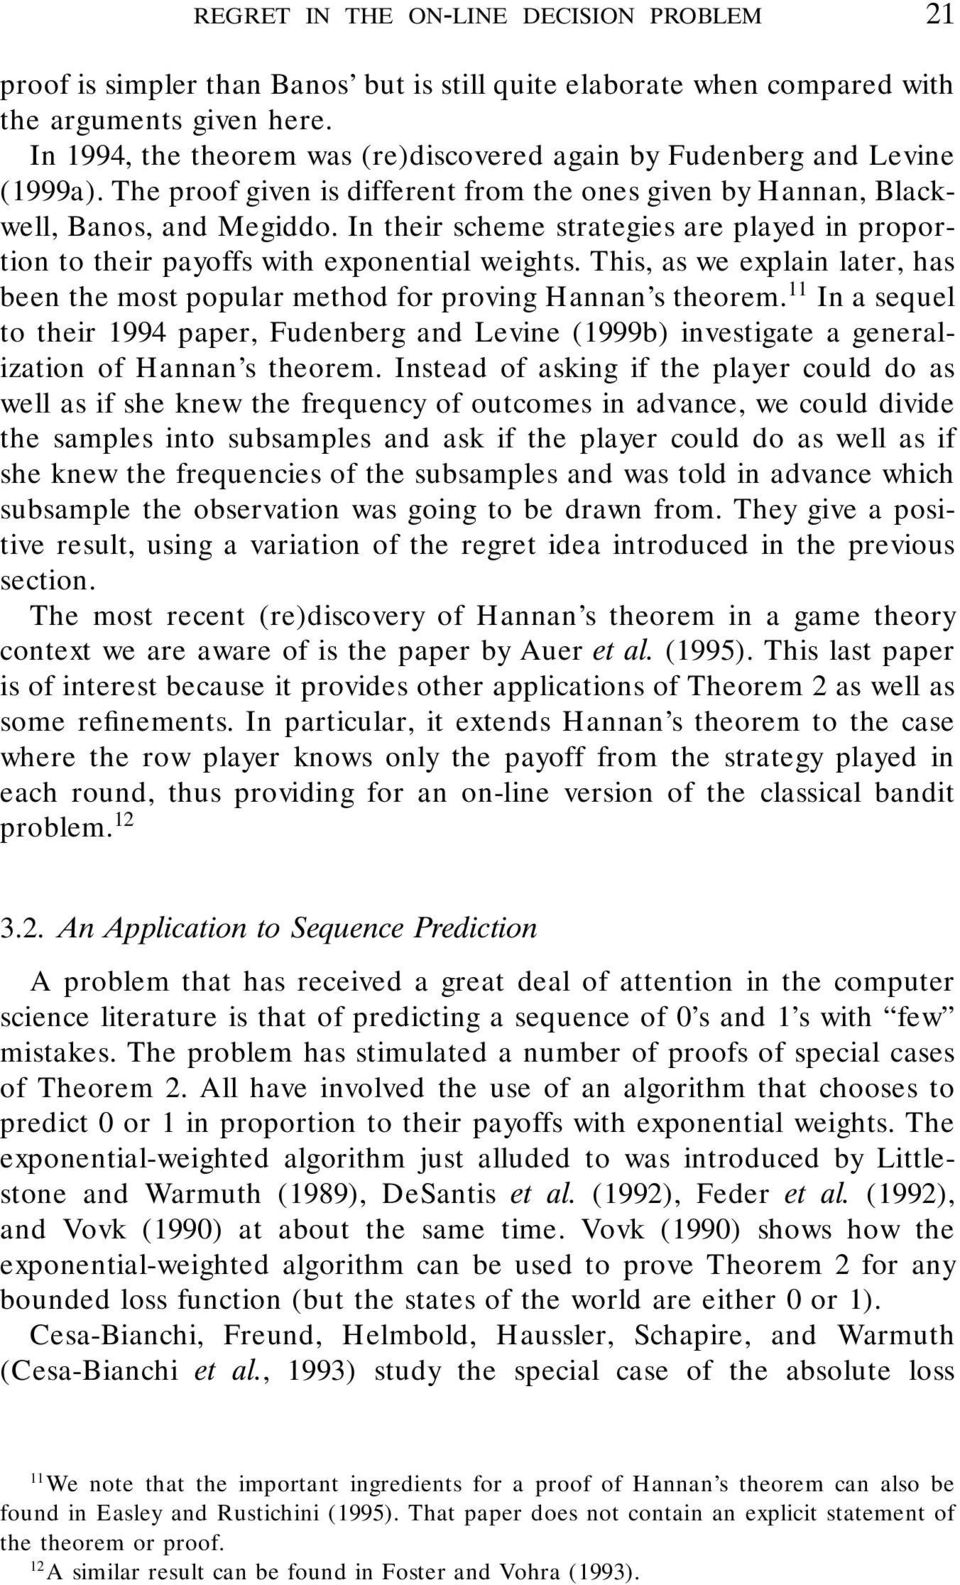 In their scheme strategies are played in proportion to their payoffs with exponential weights. his, as we explain later, has been the most popular method for proving Hannan s theorem.